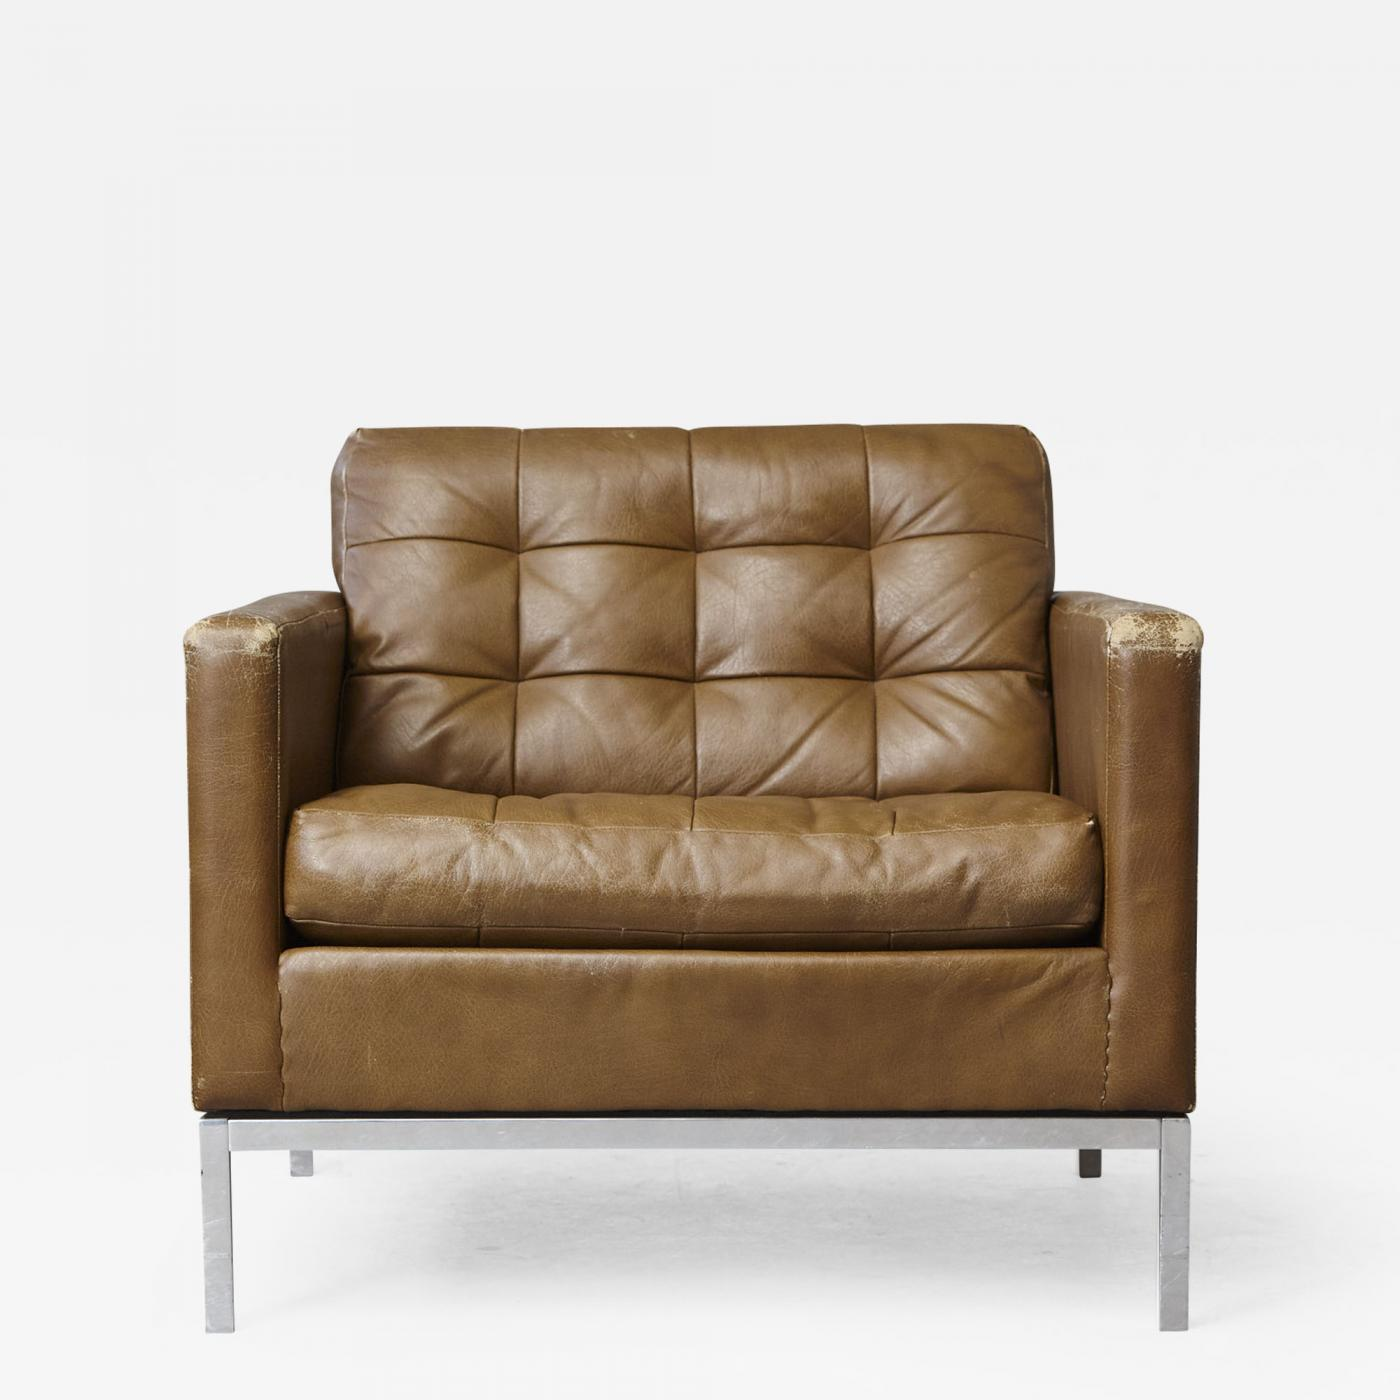 Awesome Florence Knoll Florence Knoll Tan Leather Button Tufted Lounge Chair 1970S Uwap Interior Chair Design Uwaporg